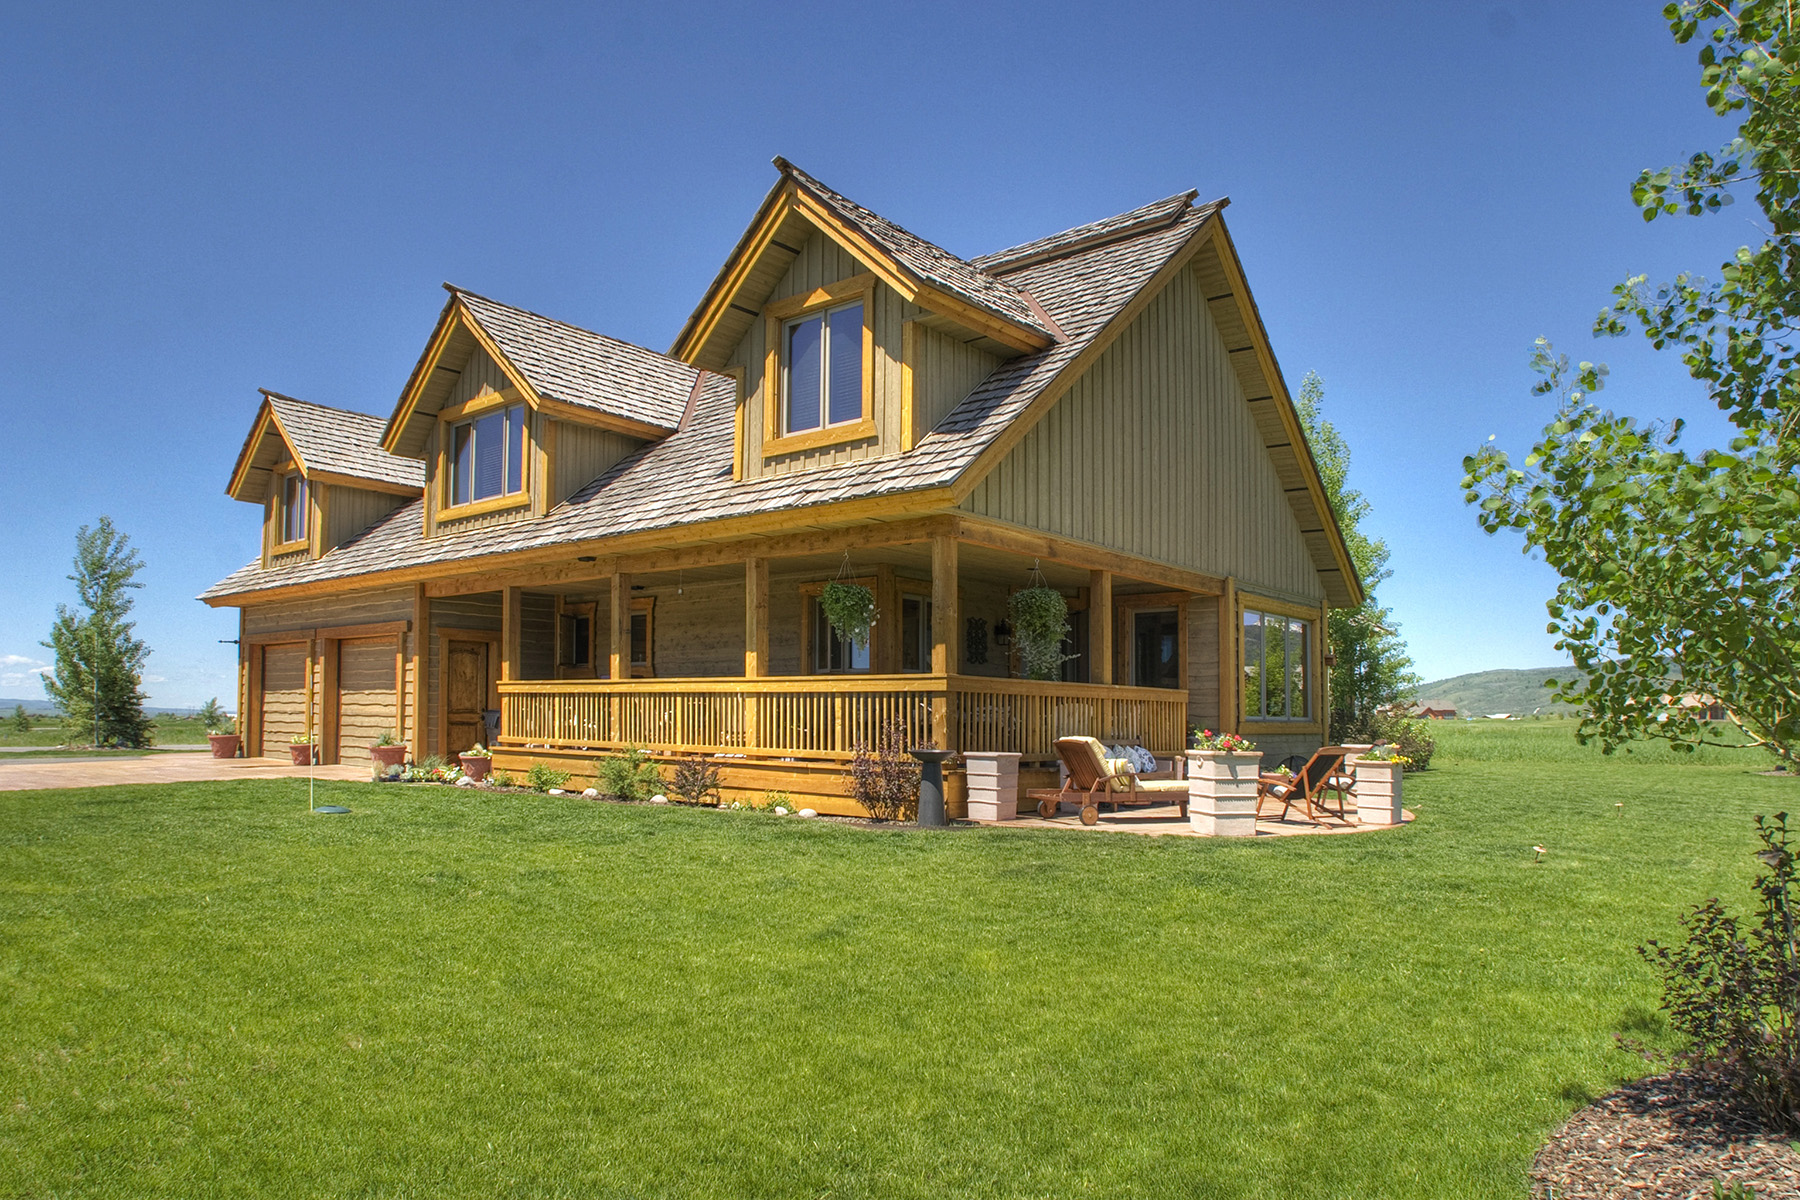 Single Family Home for Sale at Gorgeous Home in Executive Golf Course 17 Cold Springs Victor, Idaho 83455 United States